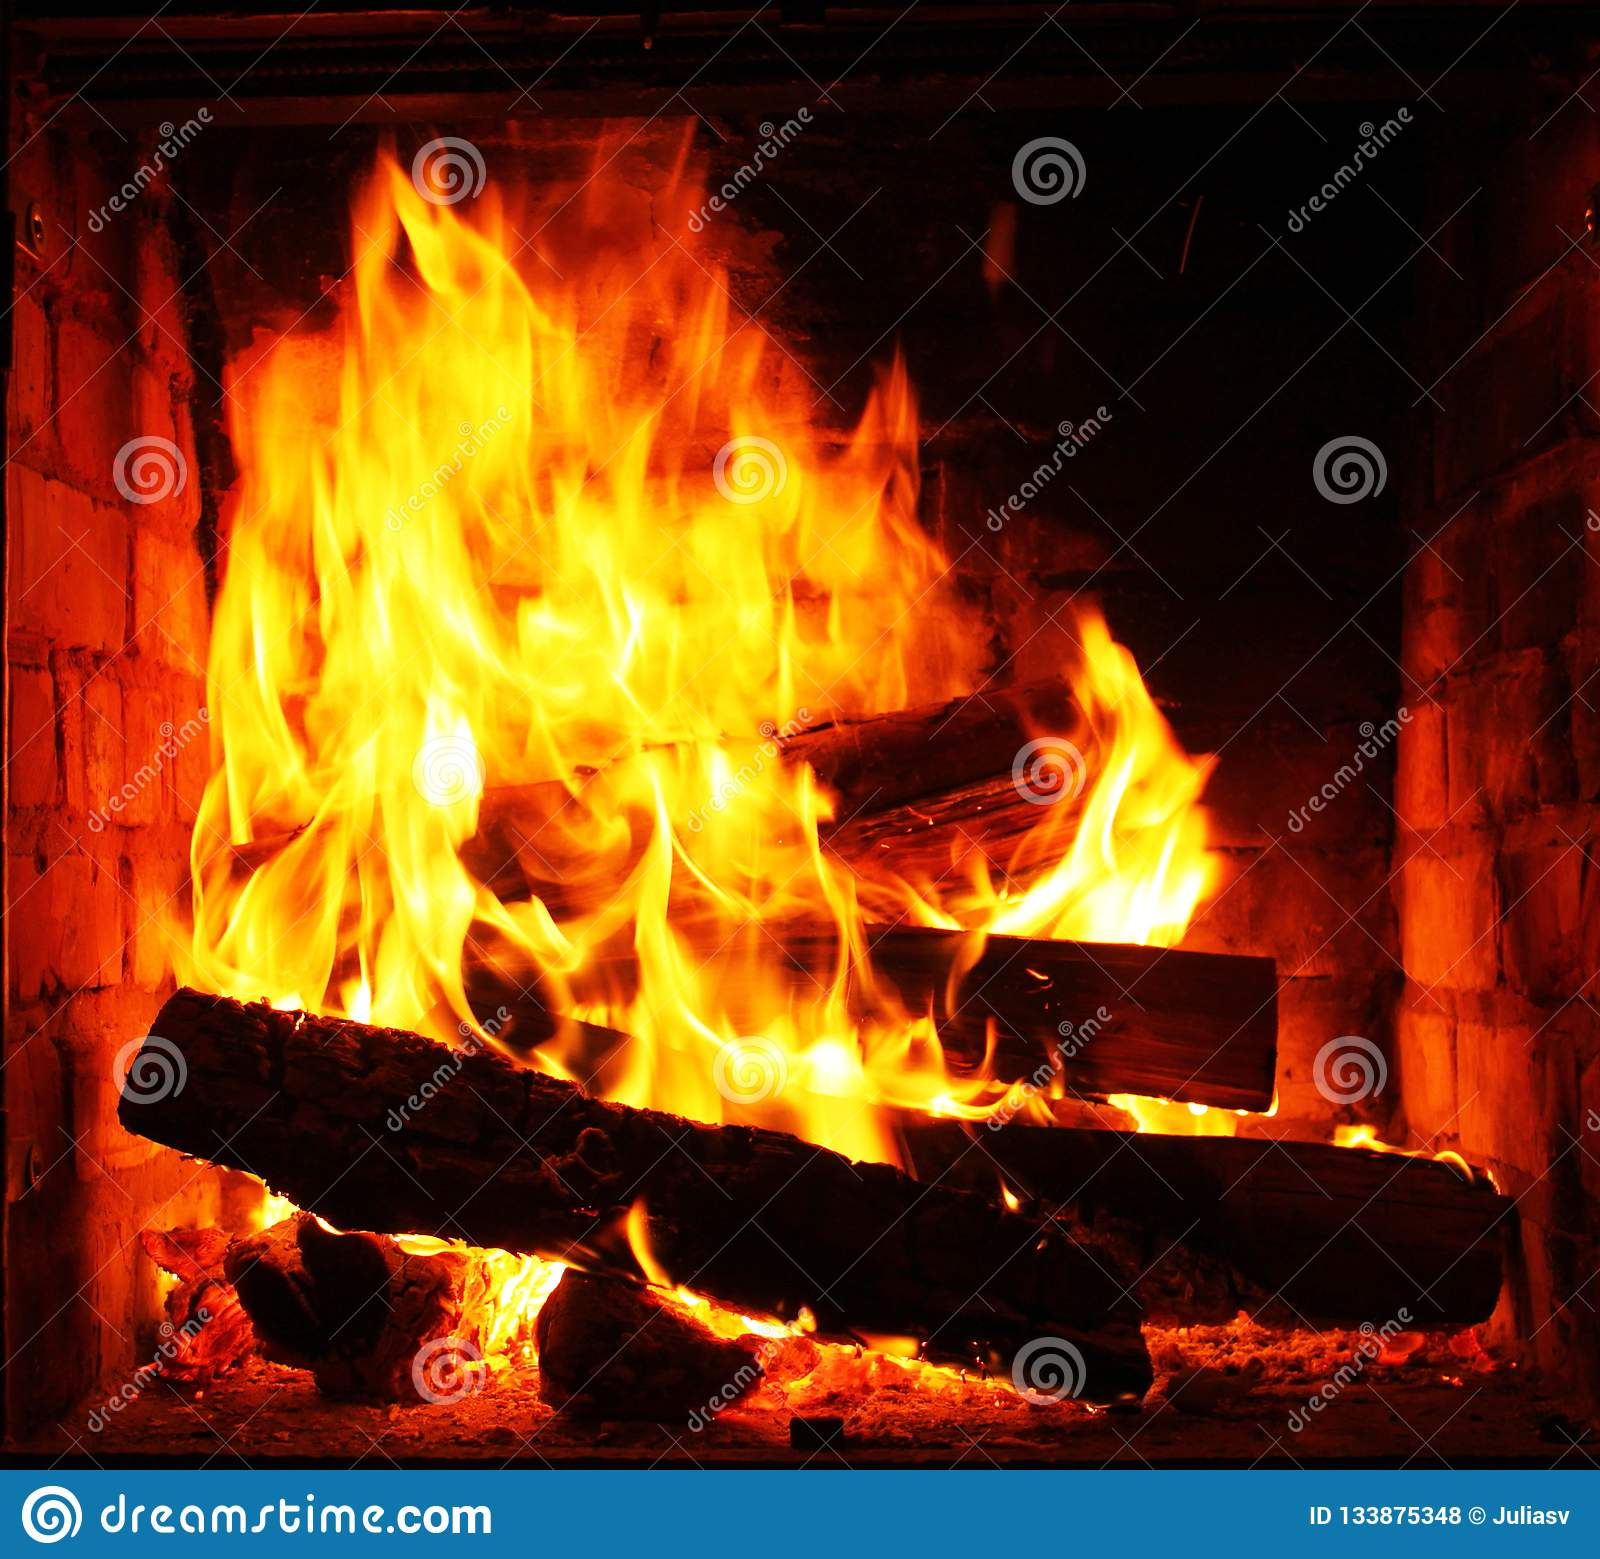 Home fireplace with beautiful orange fire and wood fire close-up